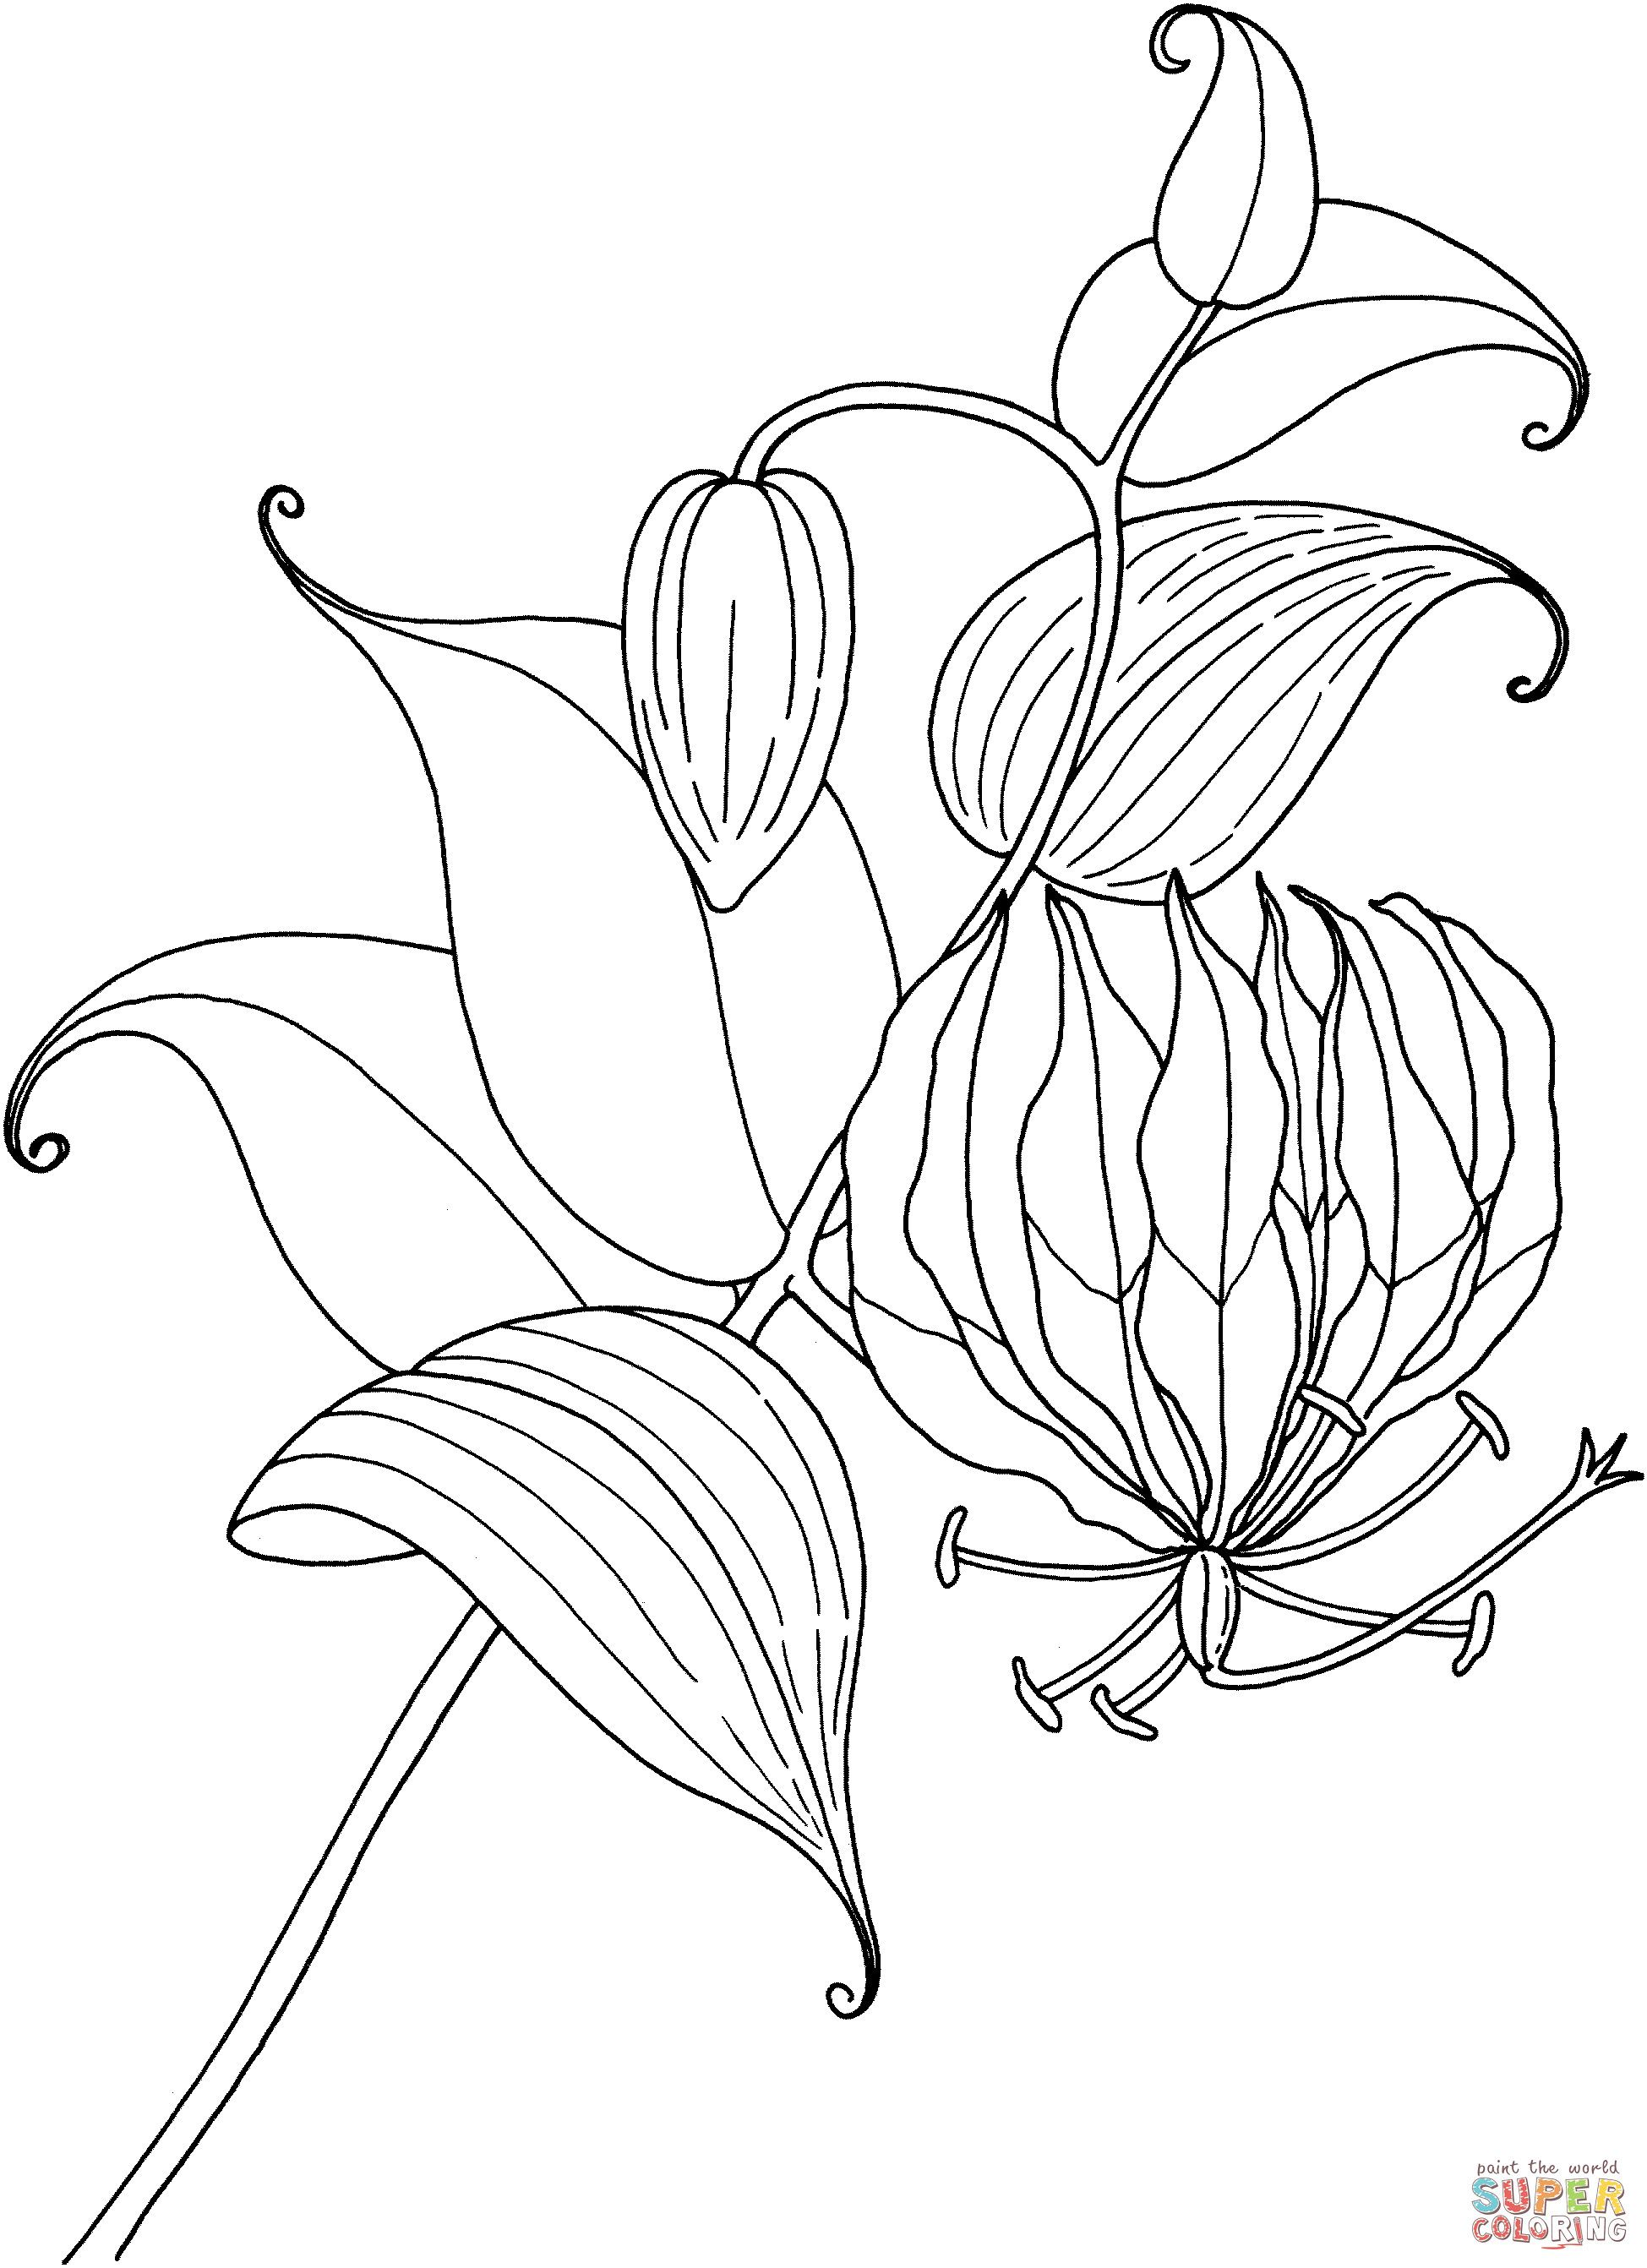 Easter Lily Coloring Page 4